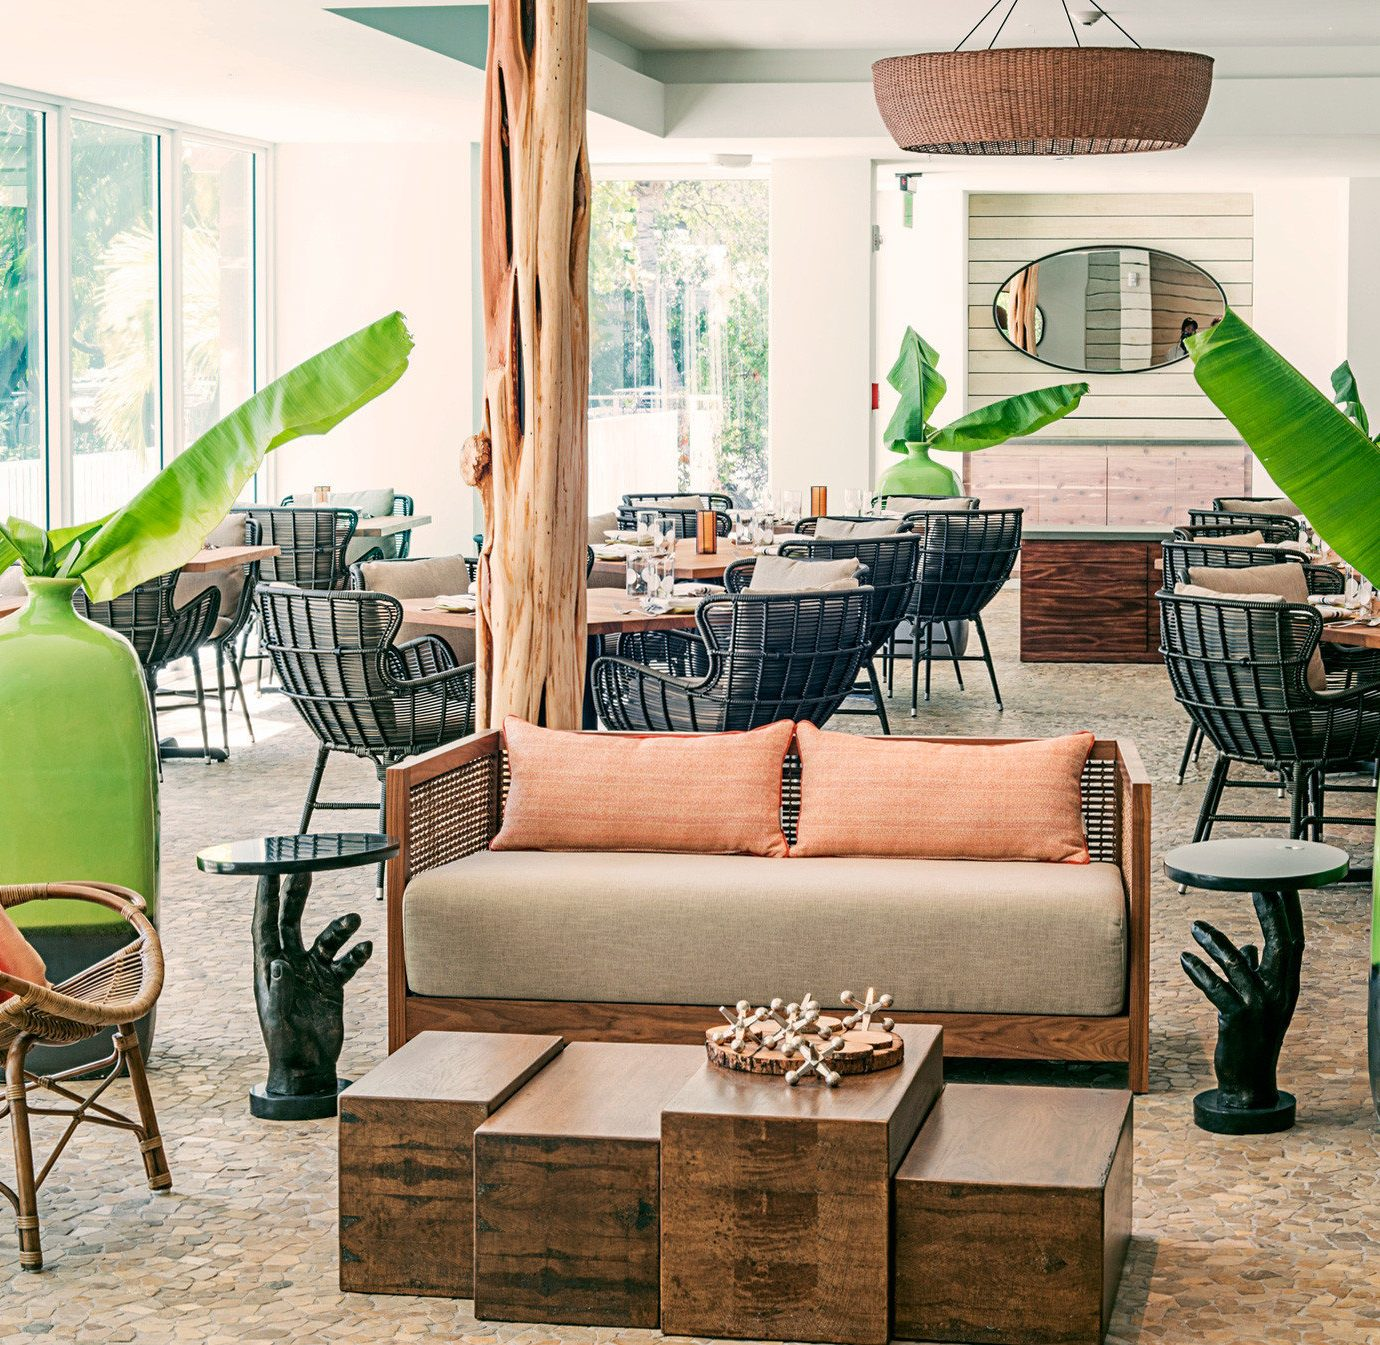 Beach Beachfront Lounge Resort green chair property home living room Lobby leather dining table